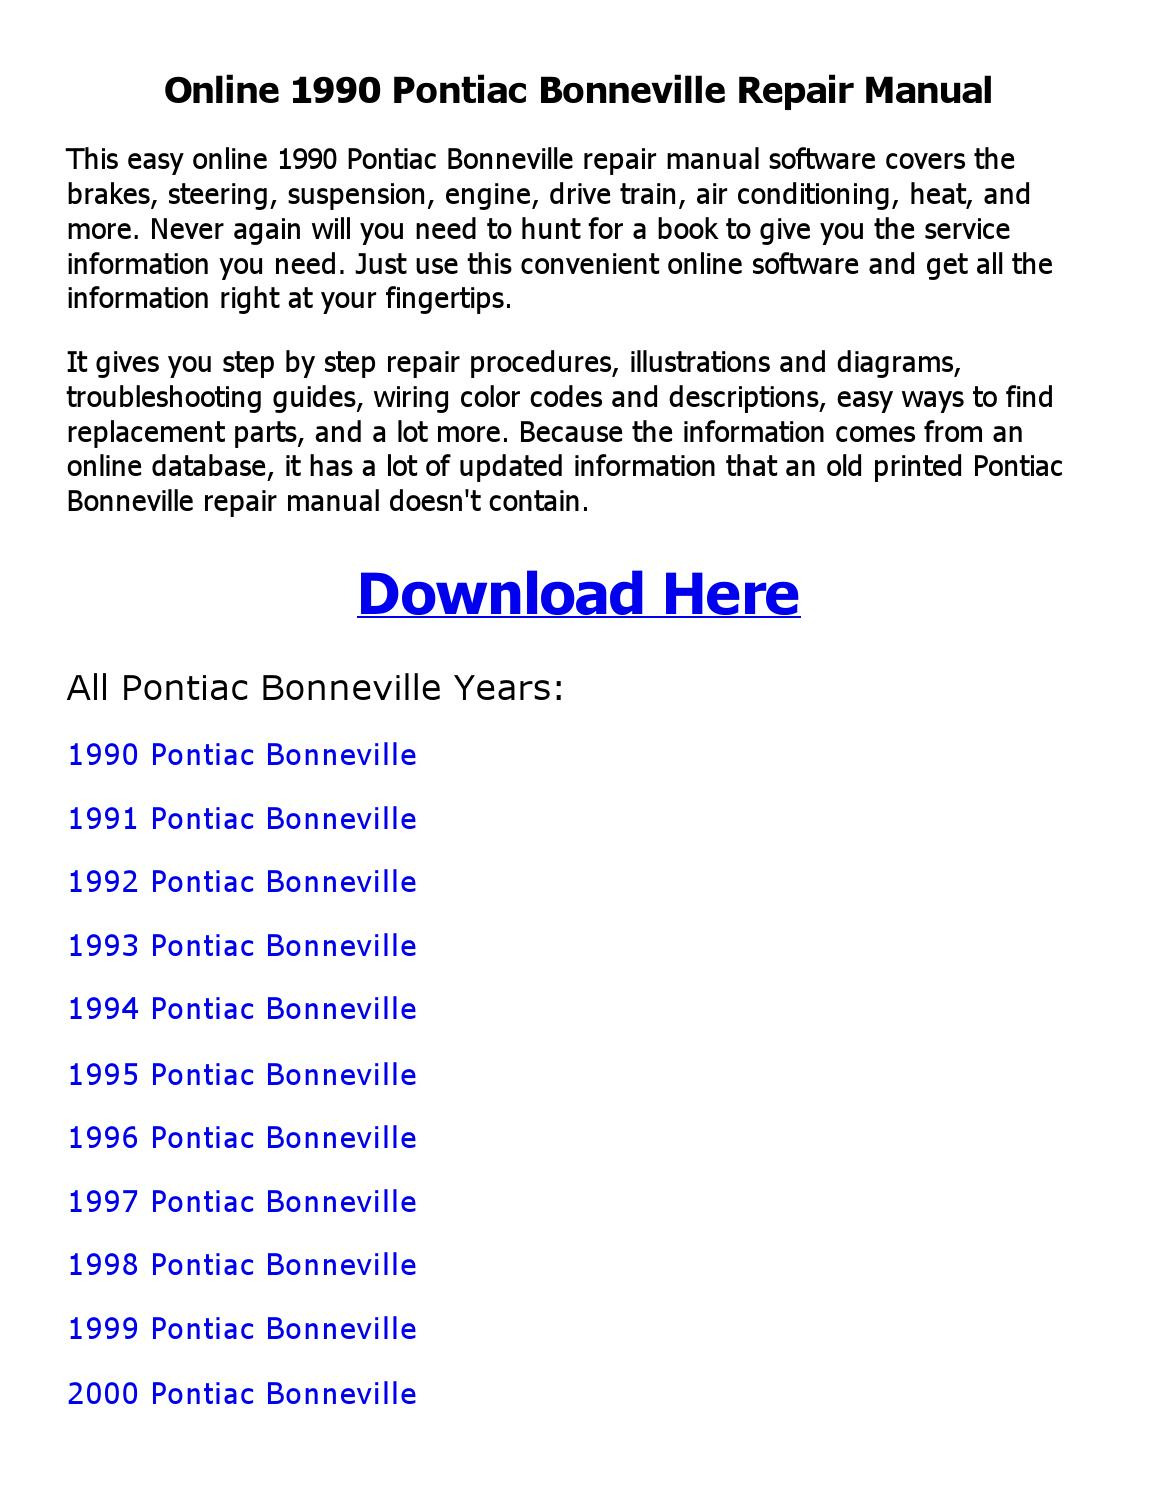 1990 Pontiac Bonneville Repair Manual Online By Sayma Issuu 2000 Engine Diagrams